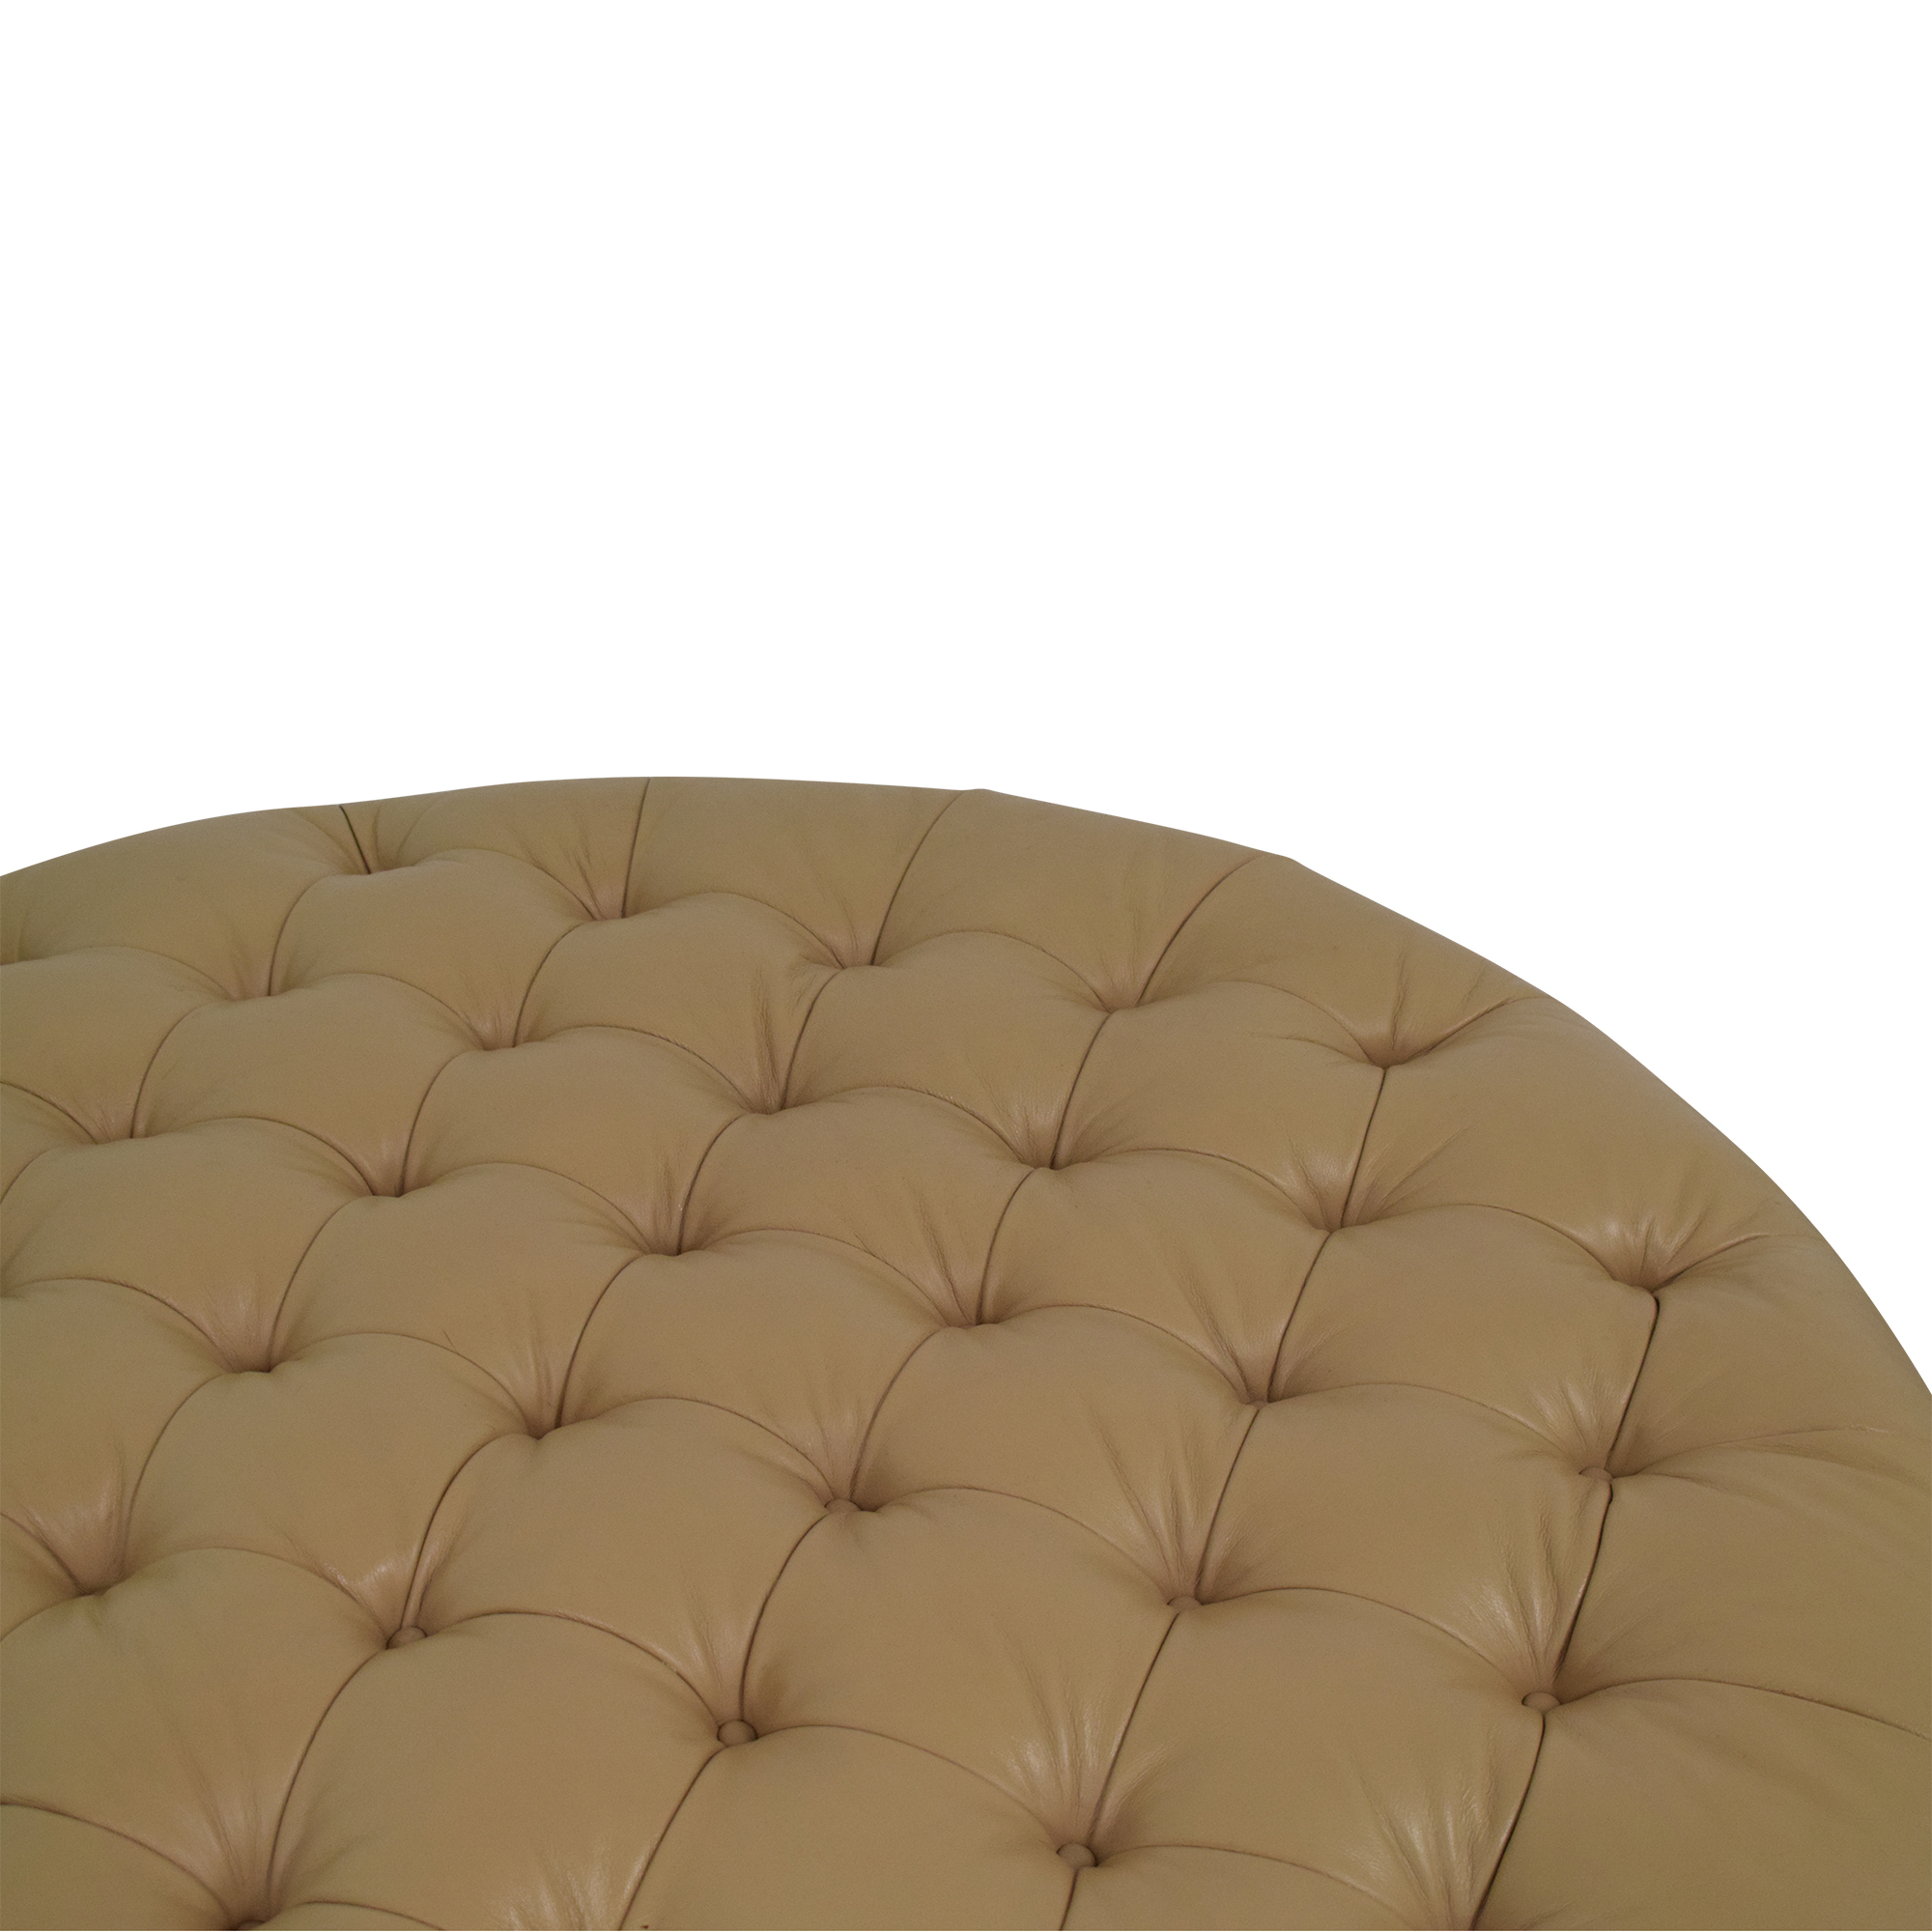 Vicente Wolf Vicente Wolf Round Tufted Ottoman nyc